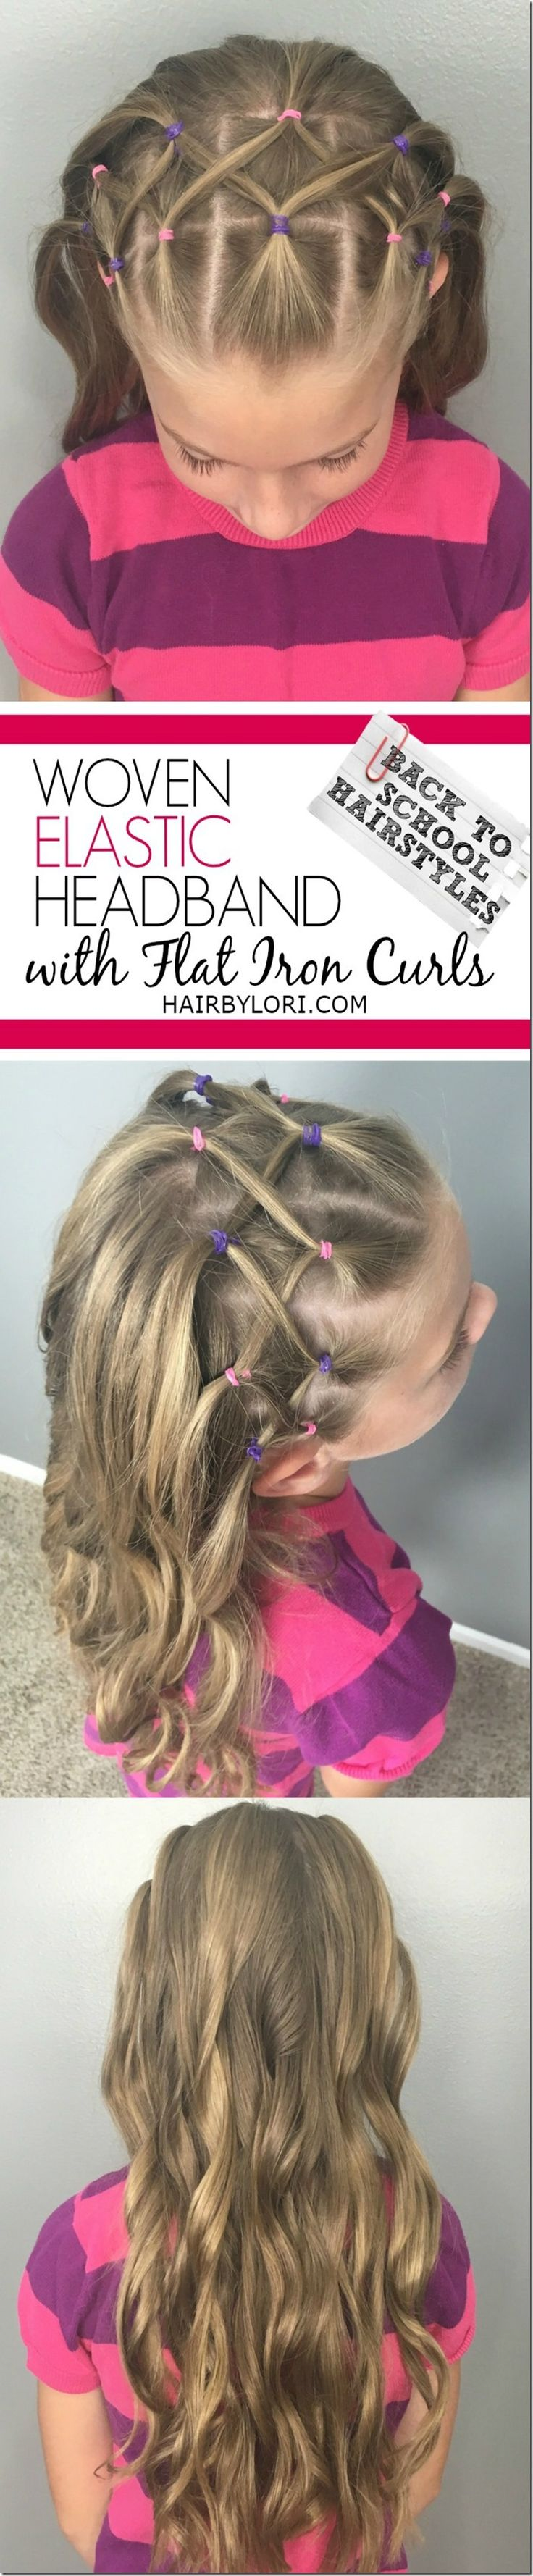 Woven Elastic Headband hairstyle with flat iron curls - love this cute back to school hair tutorial, it's perfect for picture day!